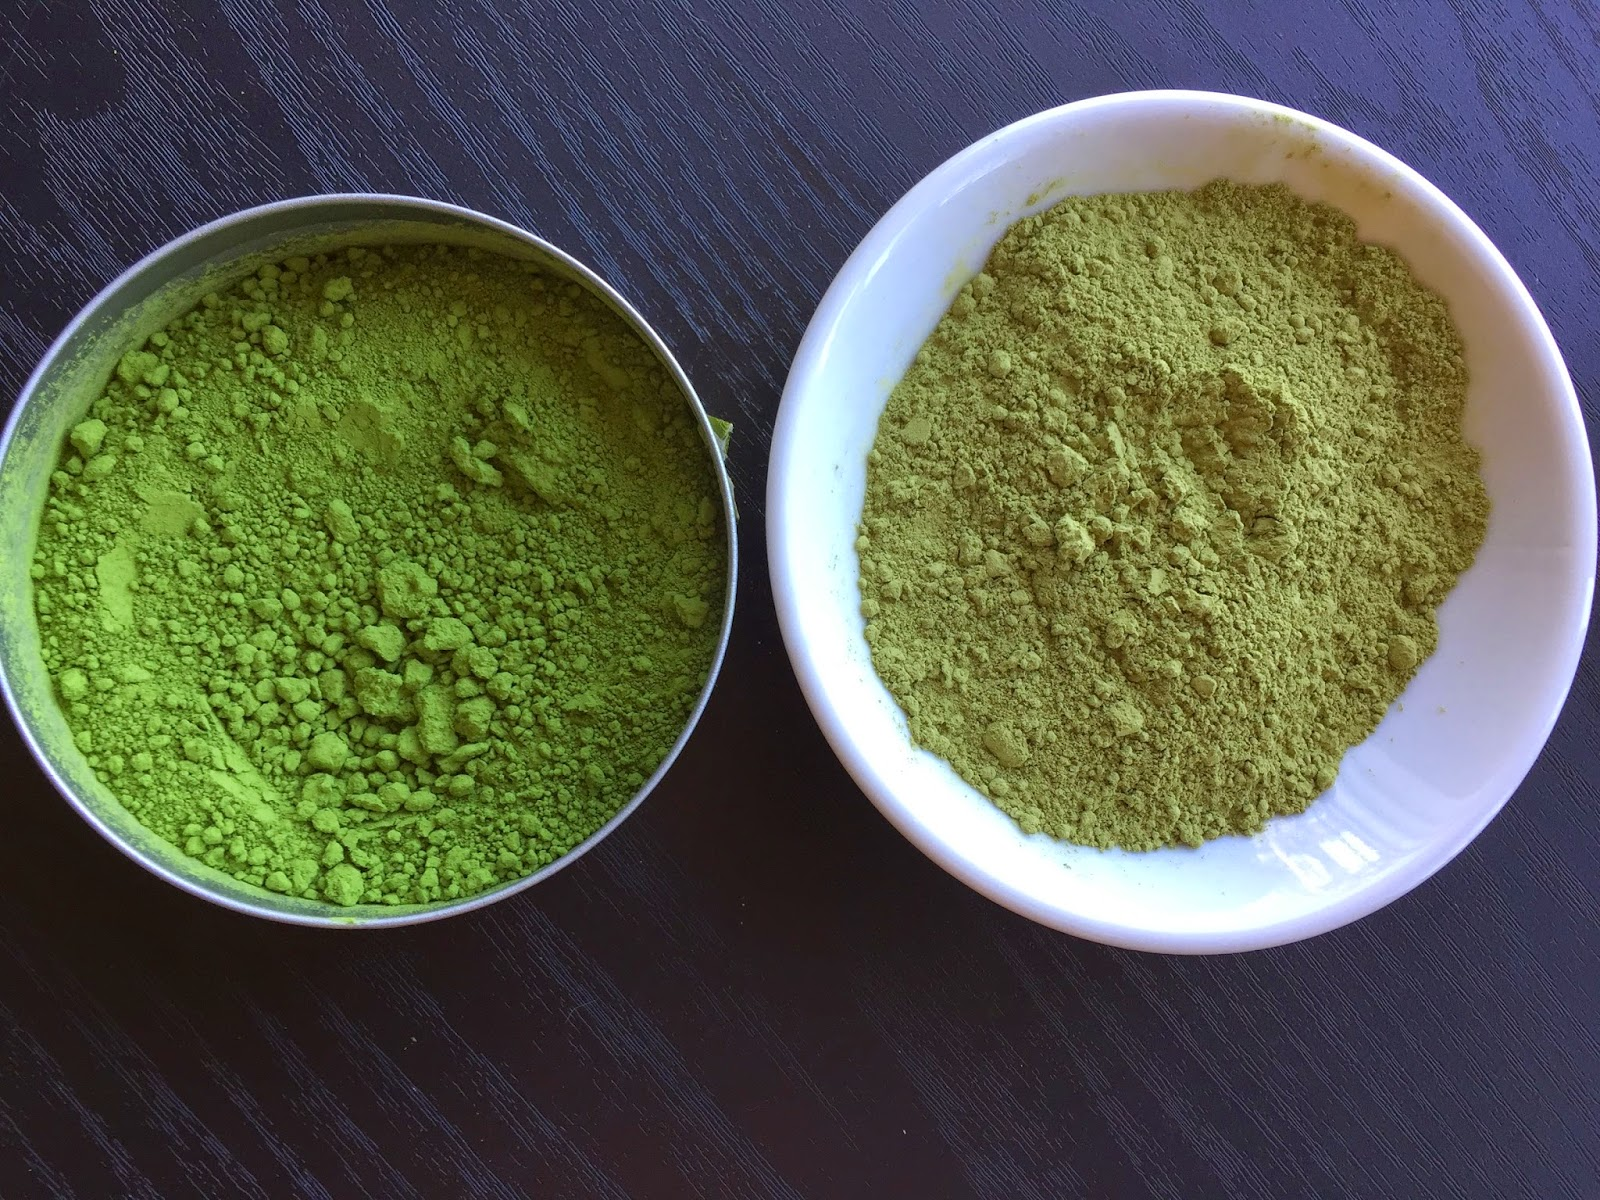 Pildiotsingu matcha good vs bad tulemus